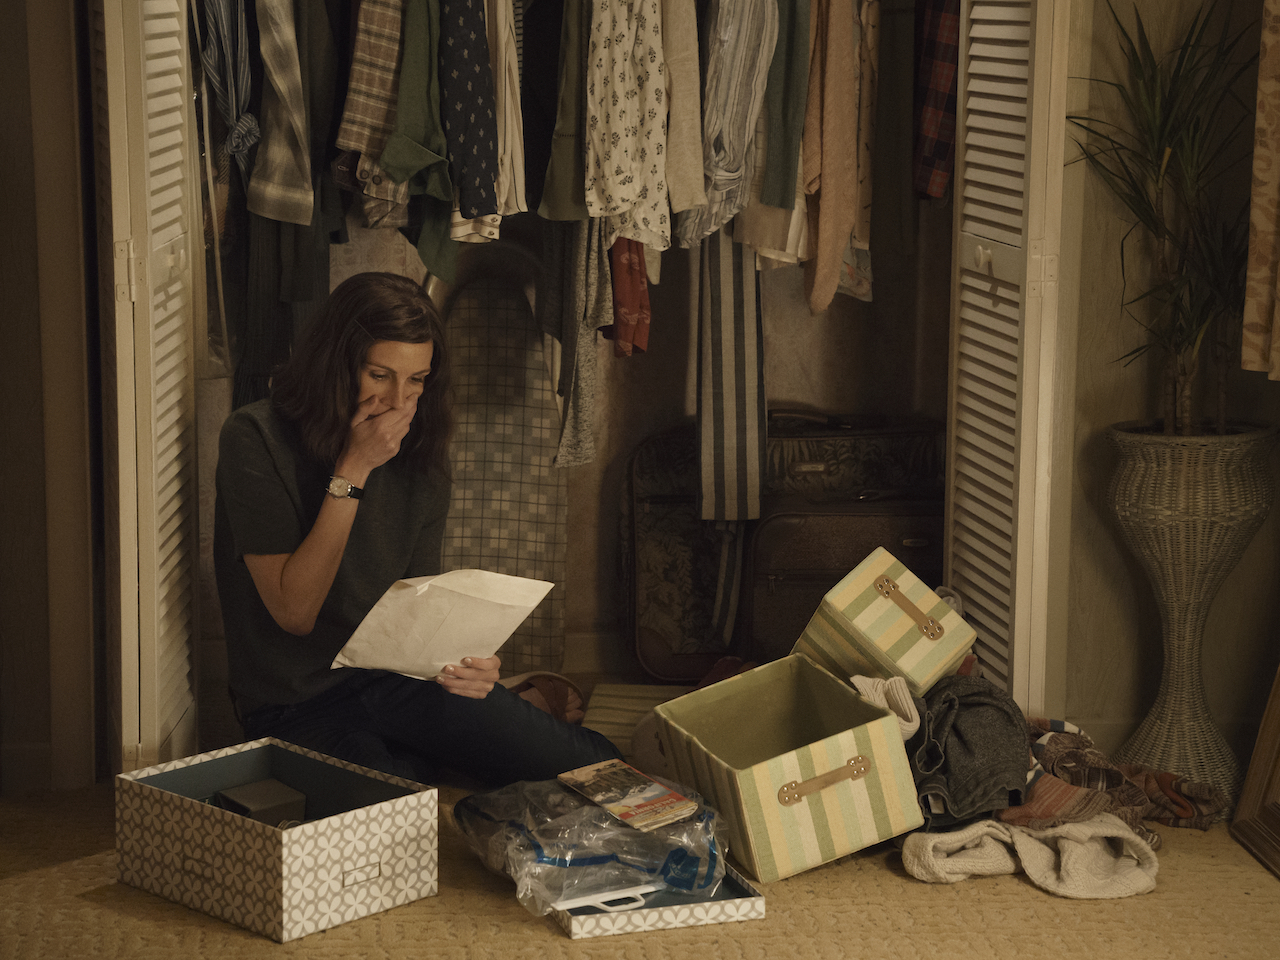 Julia Roberts Homecoming Amazon Prime-A woman kneels on the floor by her closet reading a large envelope, one hand to her mouth.